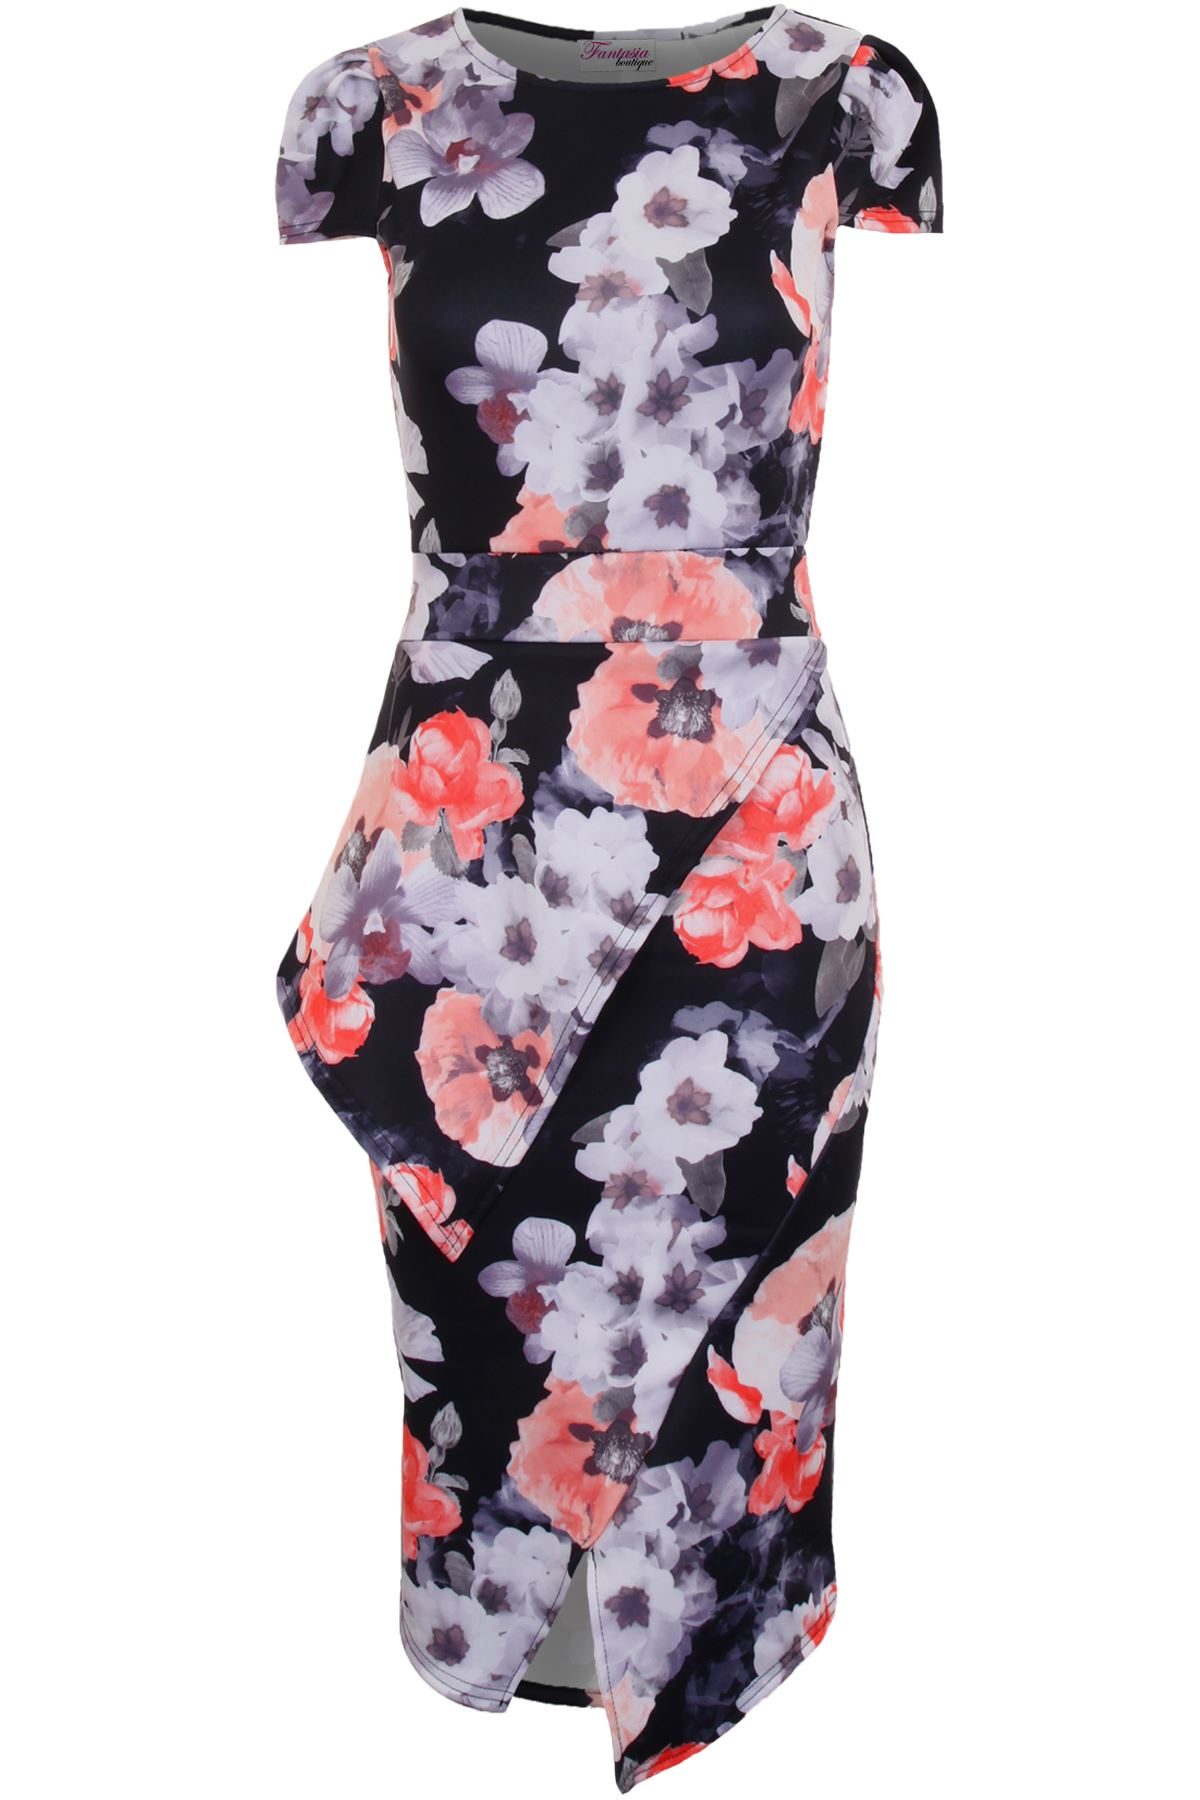 Ladies Cap Sleeve Asymmetric Half Peplum Floral Knee Length Bodycon Dress